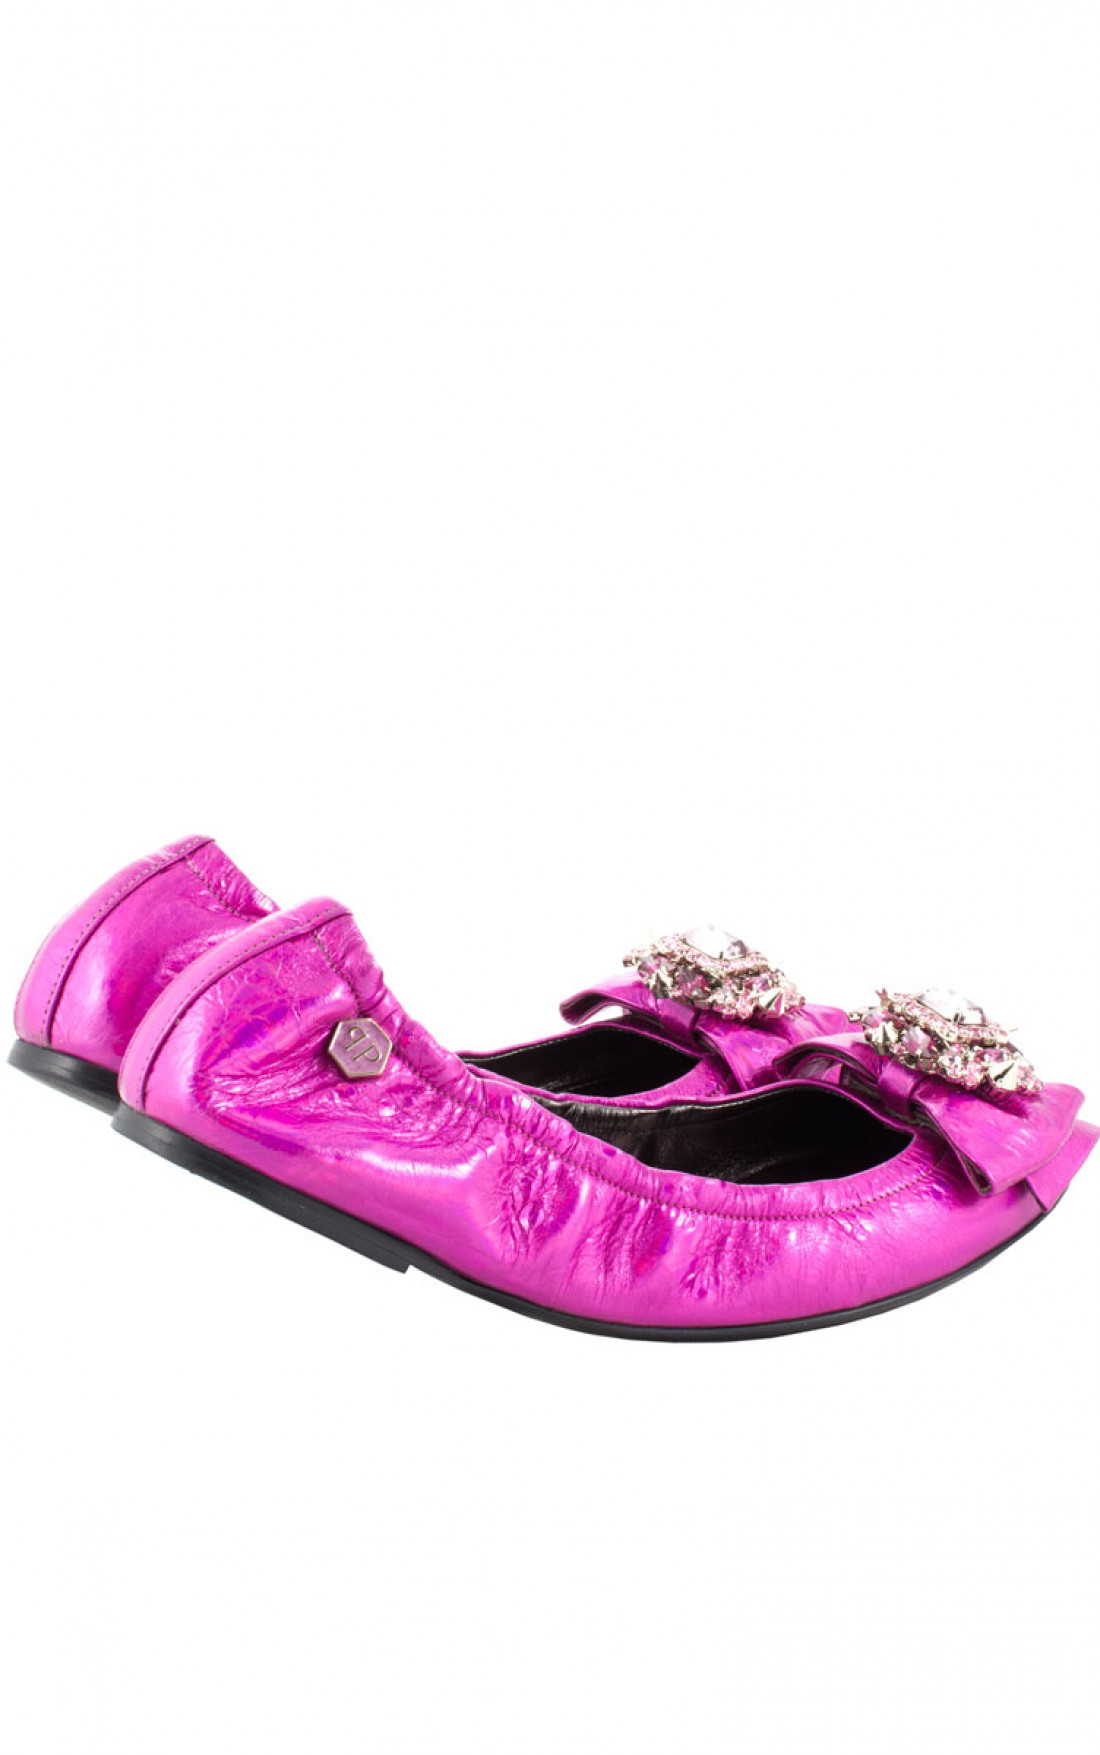 Philipp Plein - 'Ribbon Ribbon' Ballerinas Hot Pink Pair (SS14-SW052035)